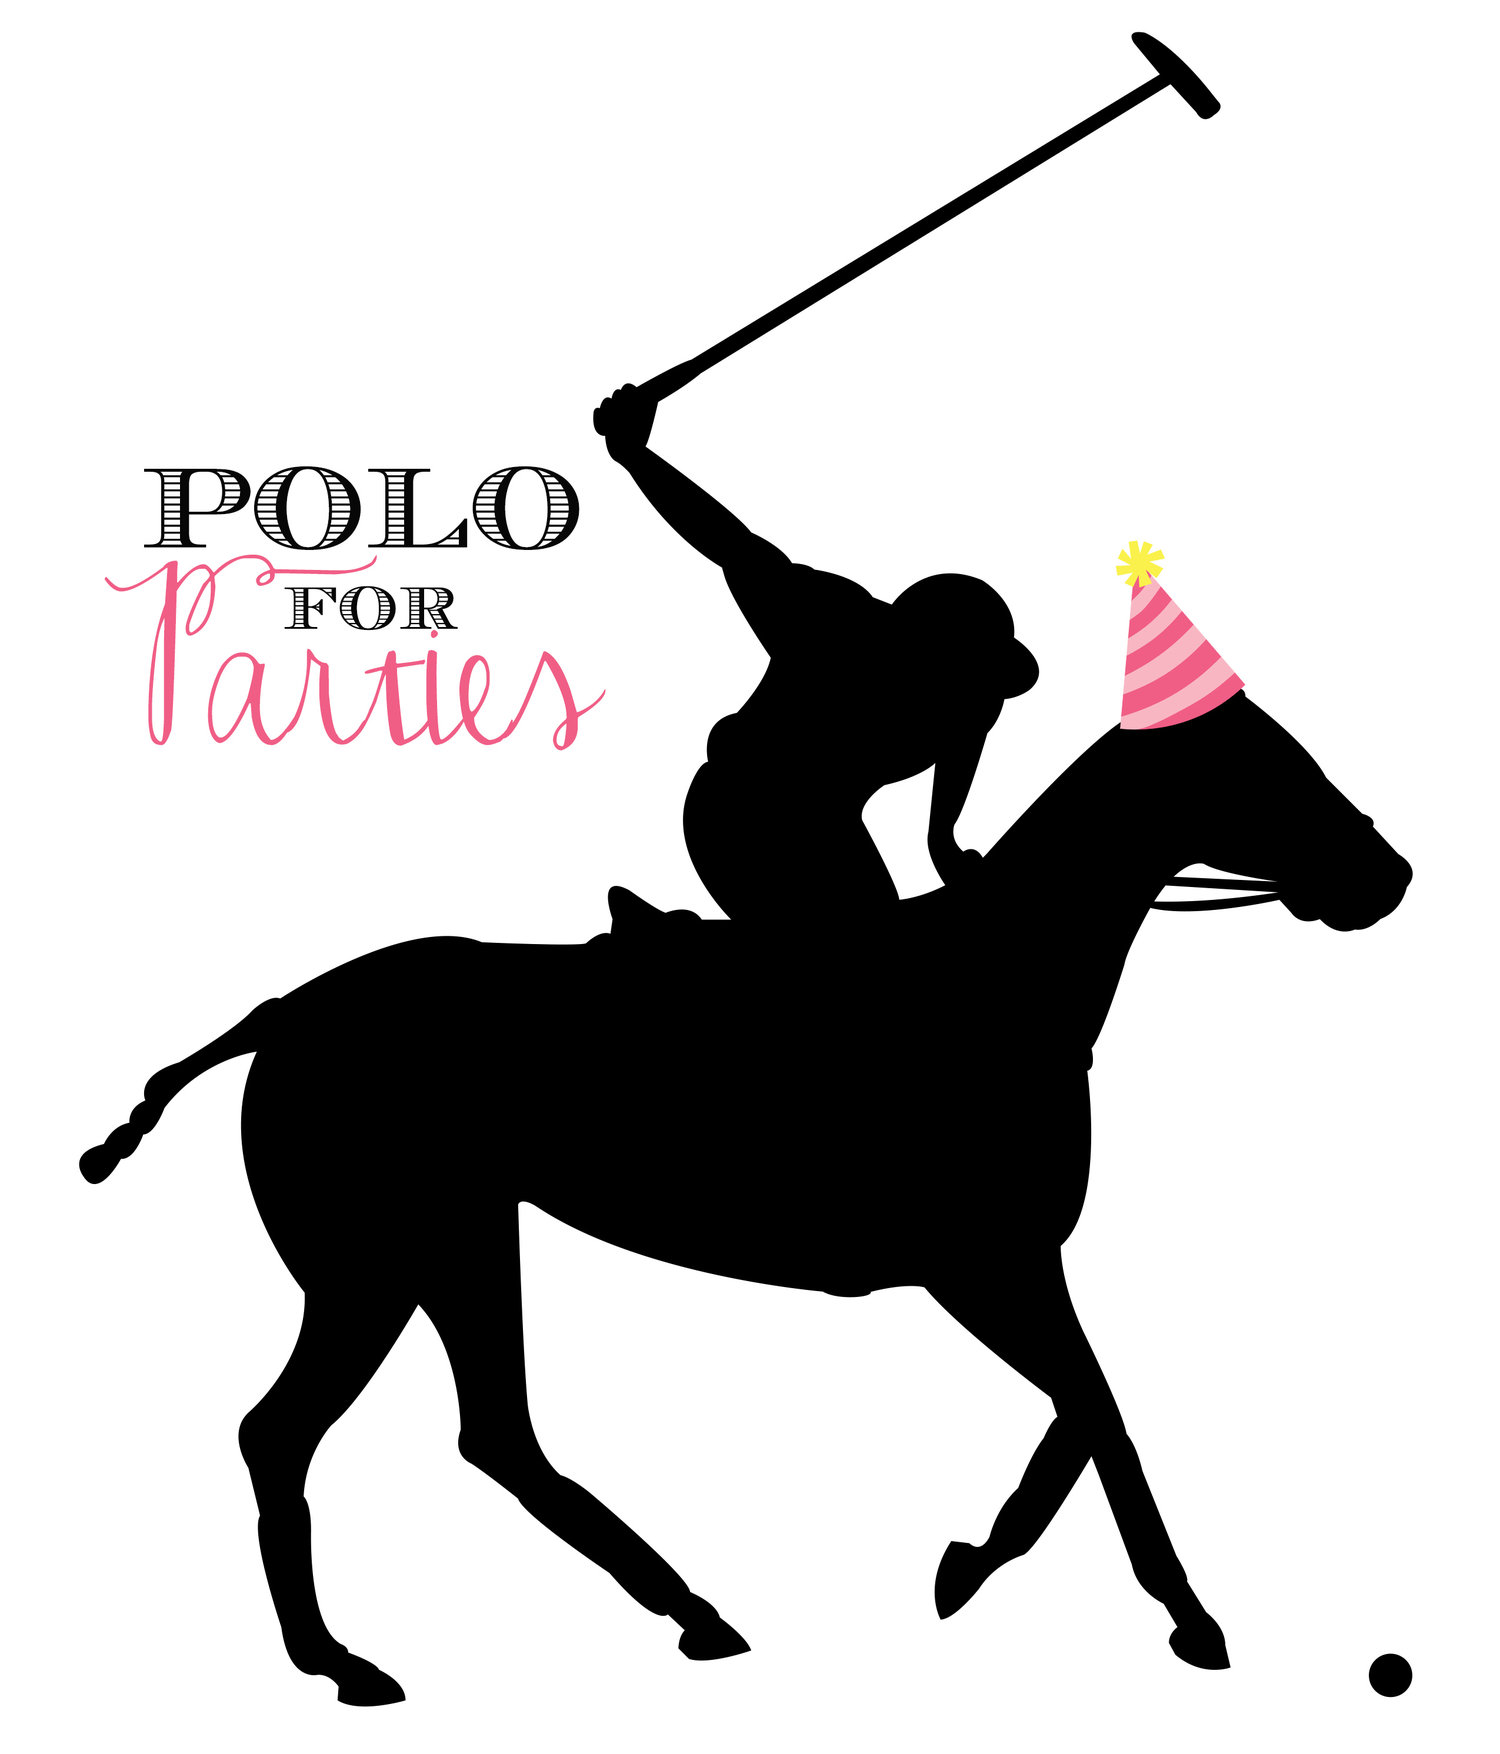 Polo for Parties